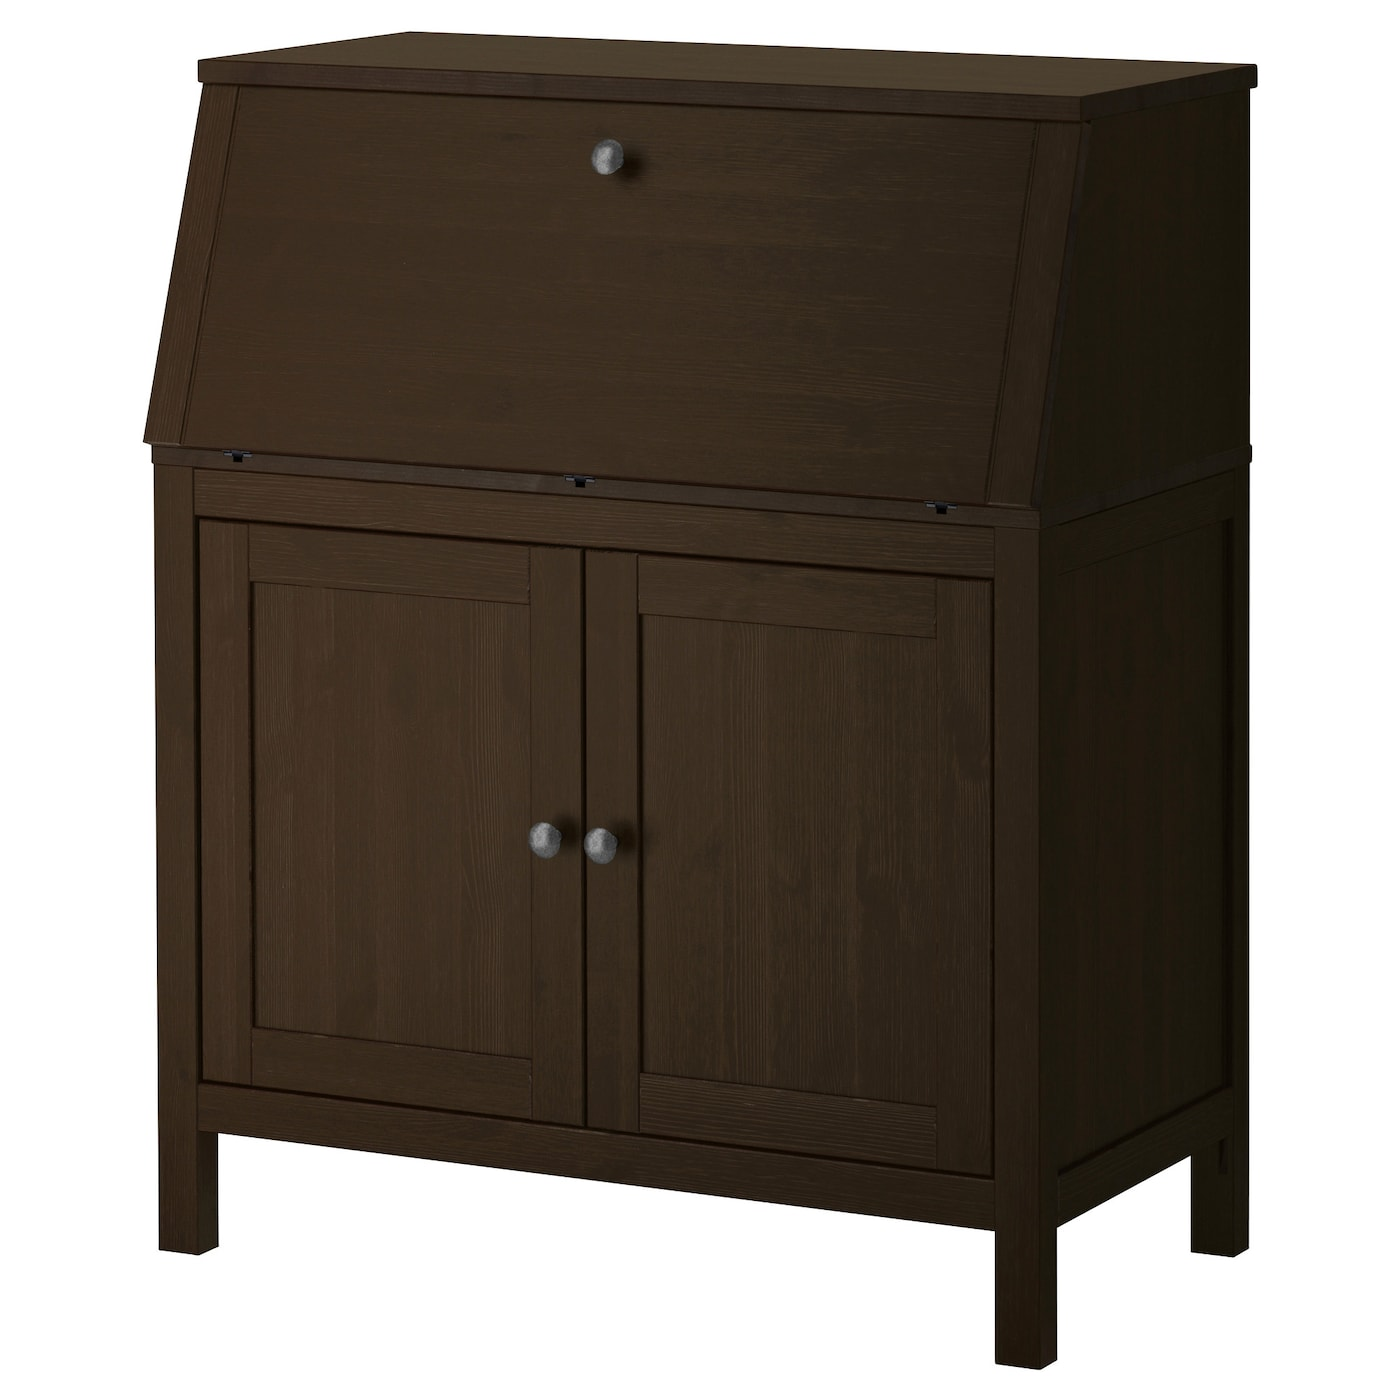 IKEA HEMNES bureau Solid wood is a durable natural material.